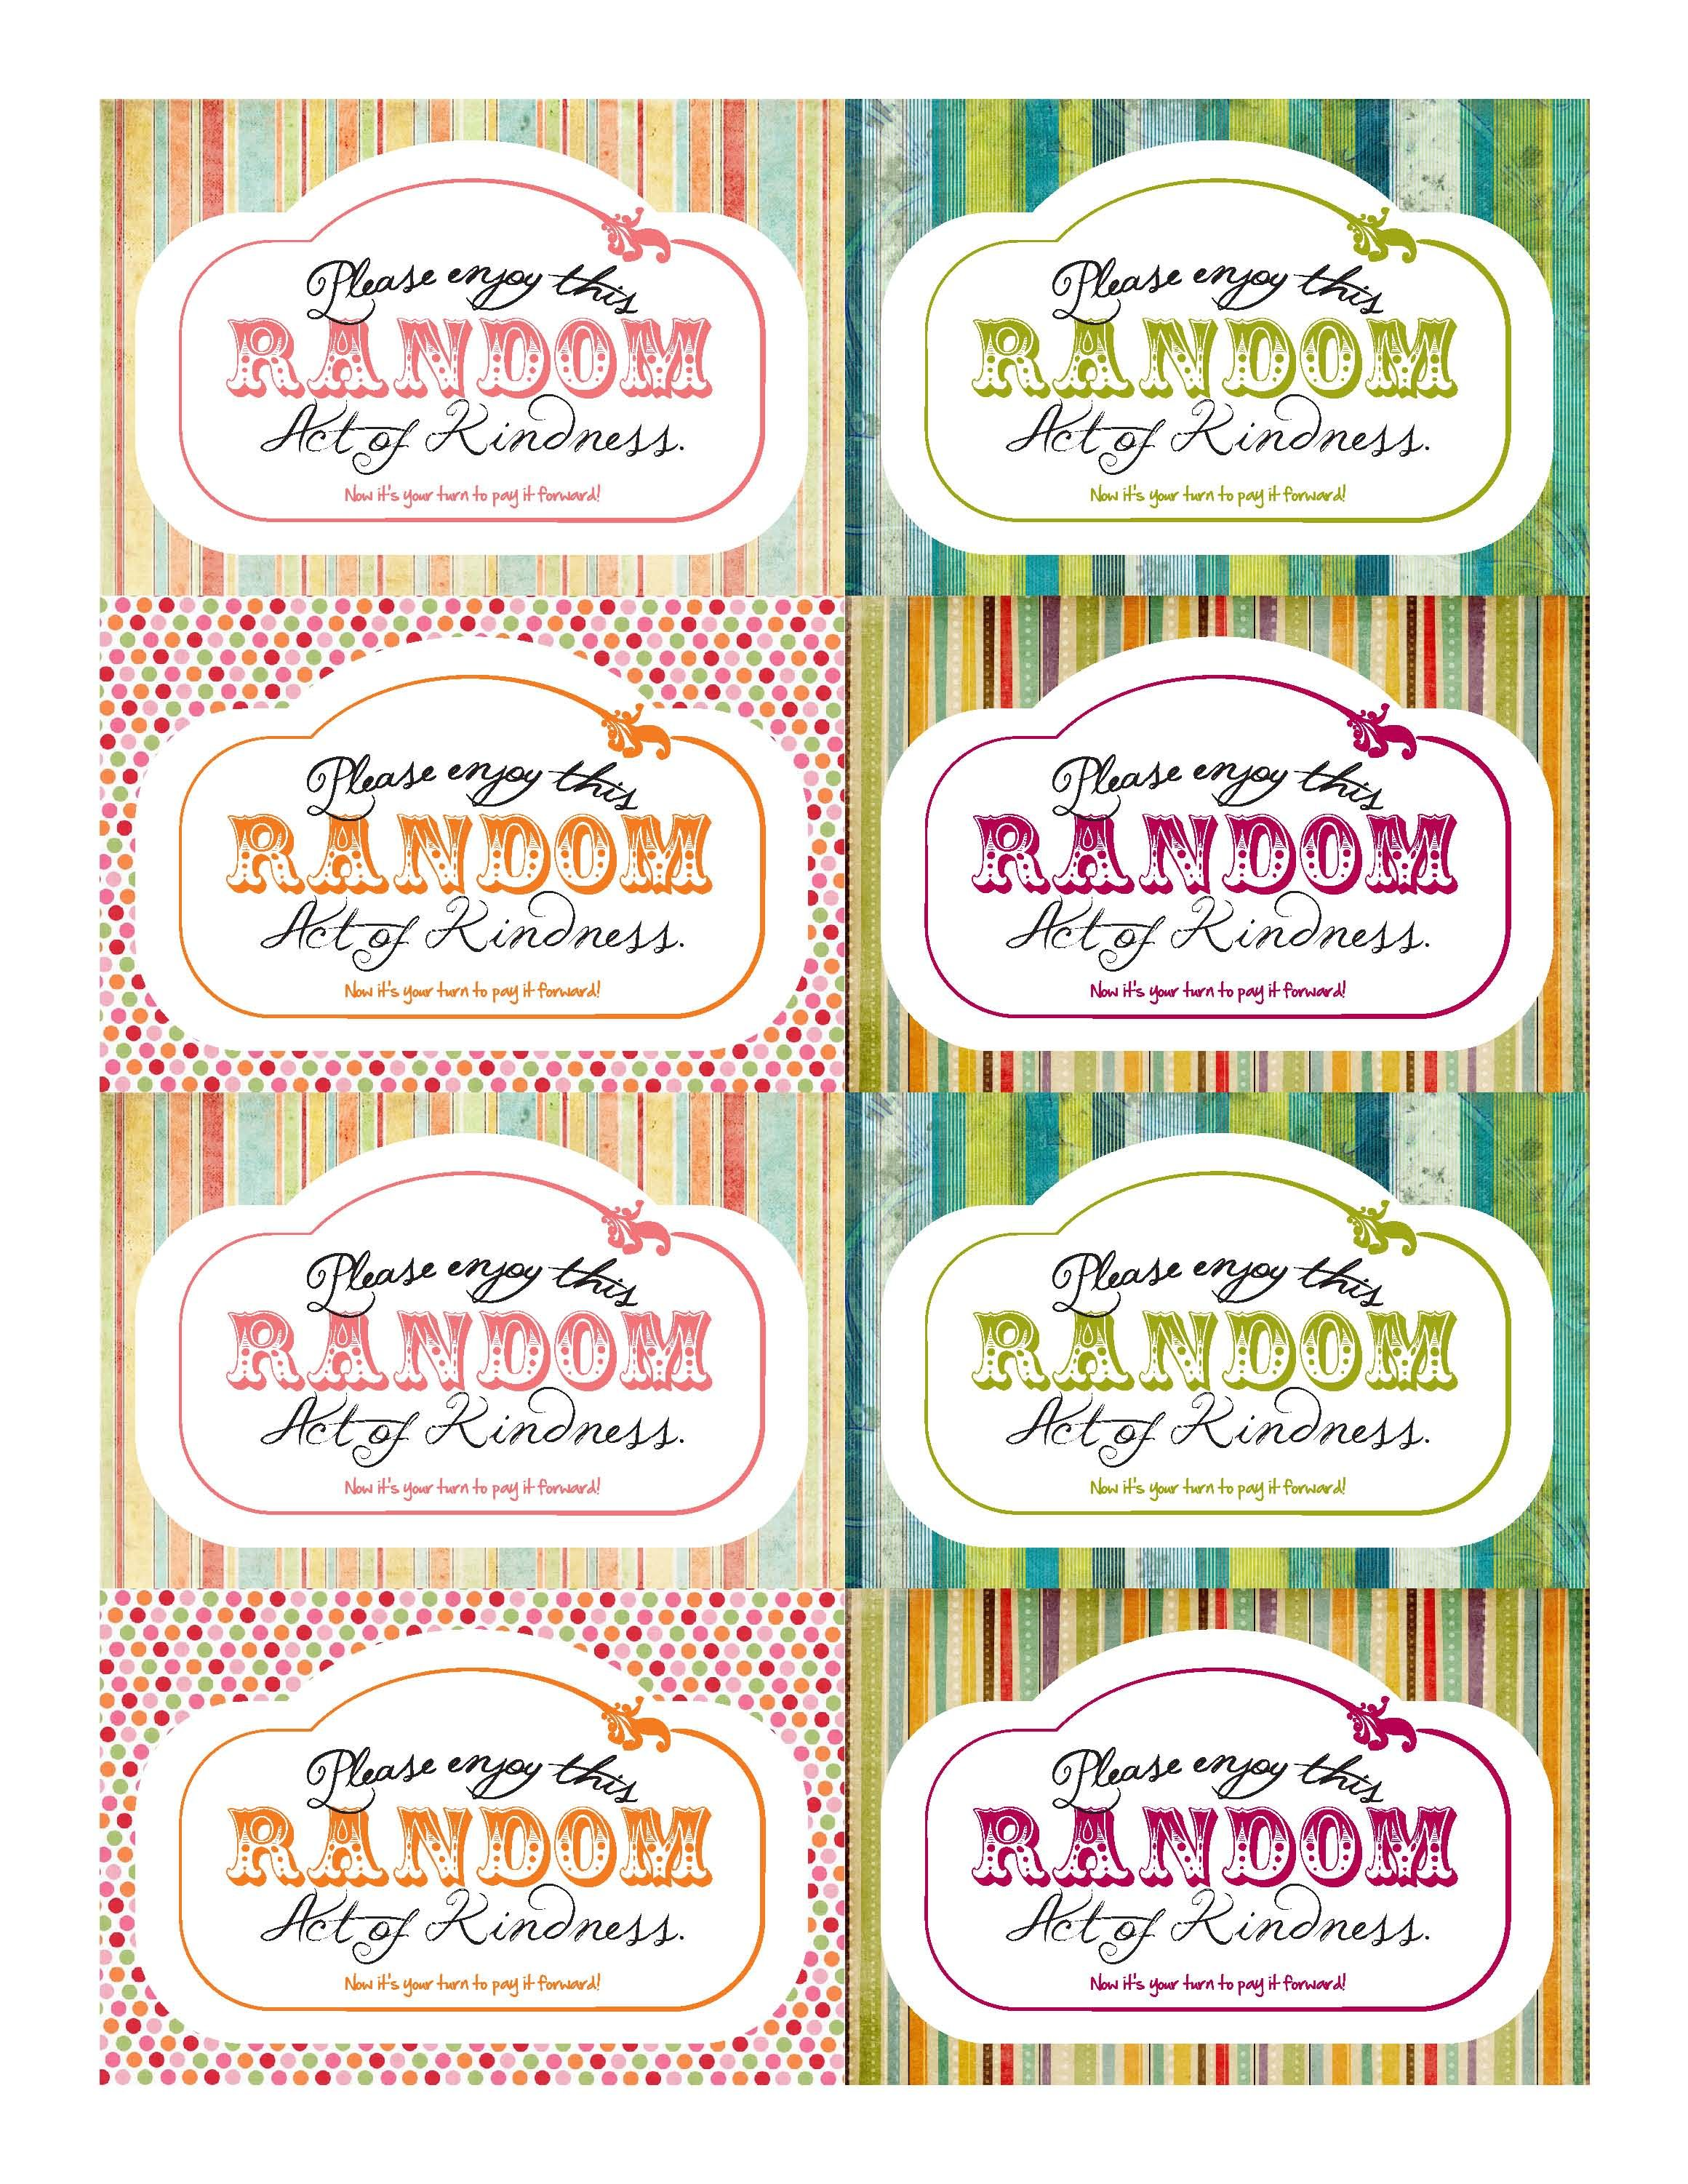 Darling Printable Random Acts Of Kindness Cards I M Inspired To Practice More Of This